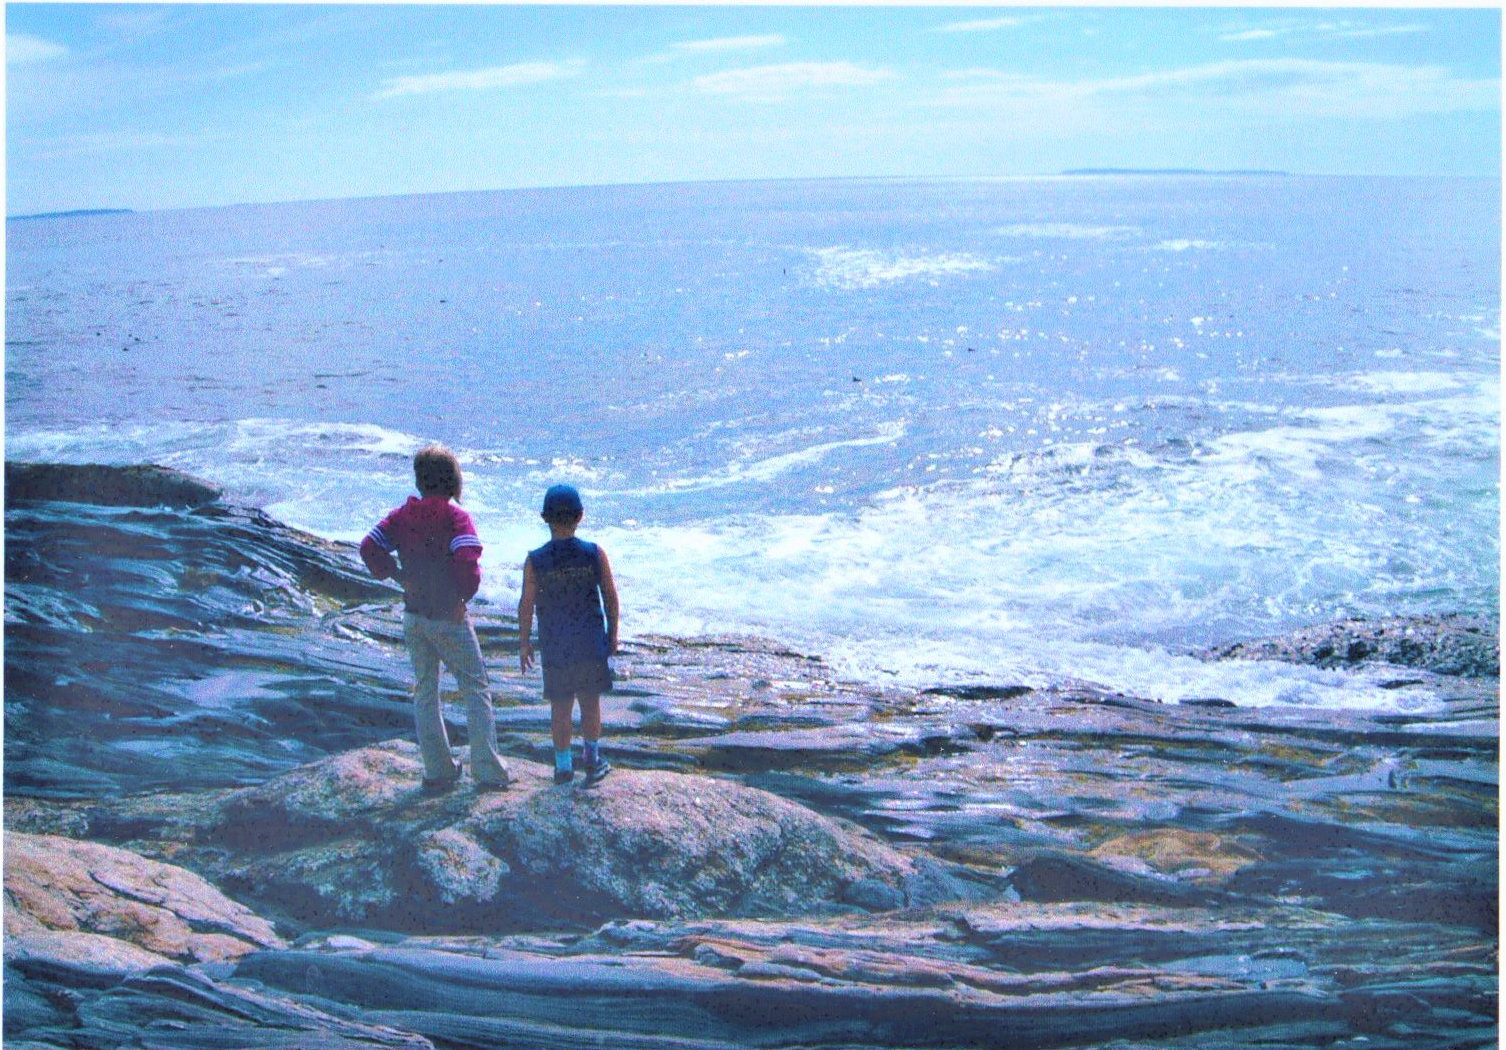 Sister and brother look out at the sparking blue ocean from atop a weathered rock.